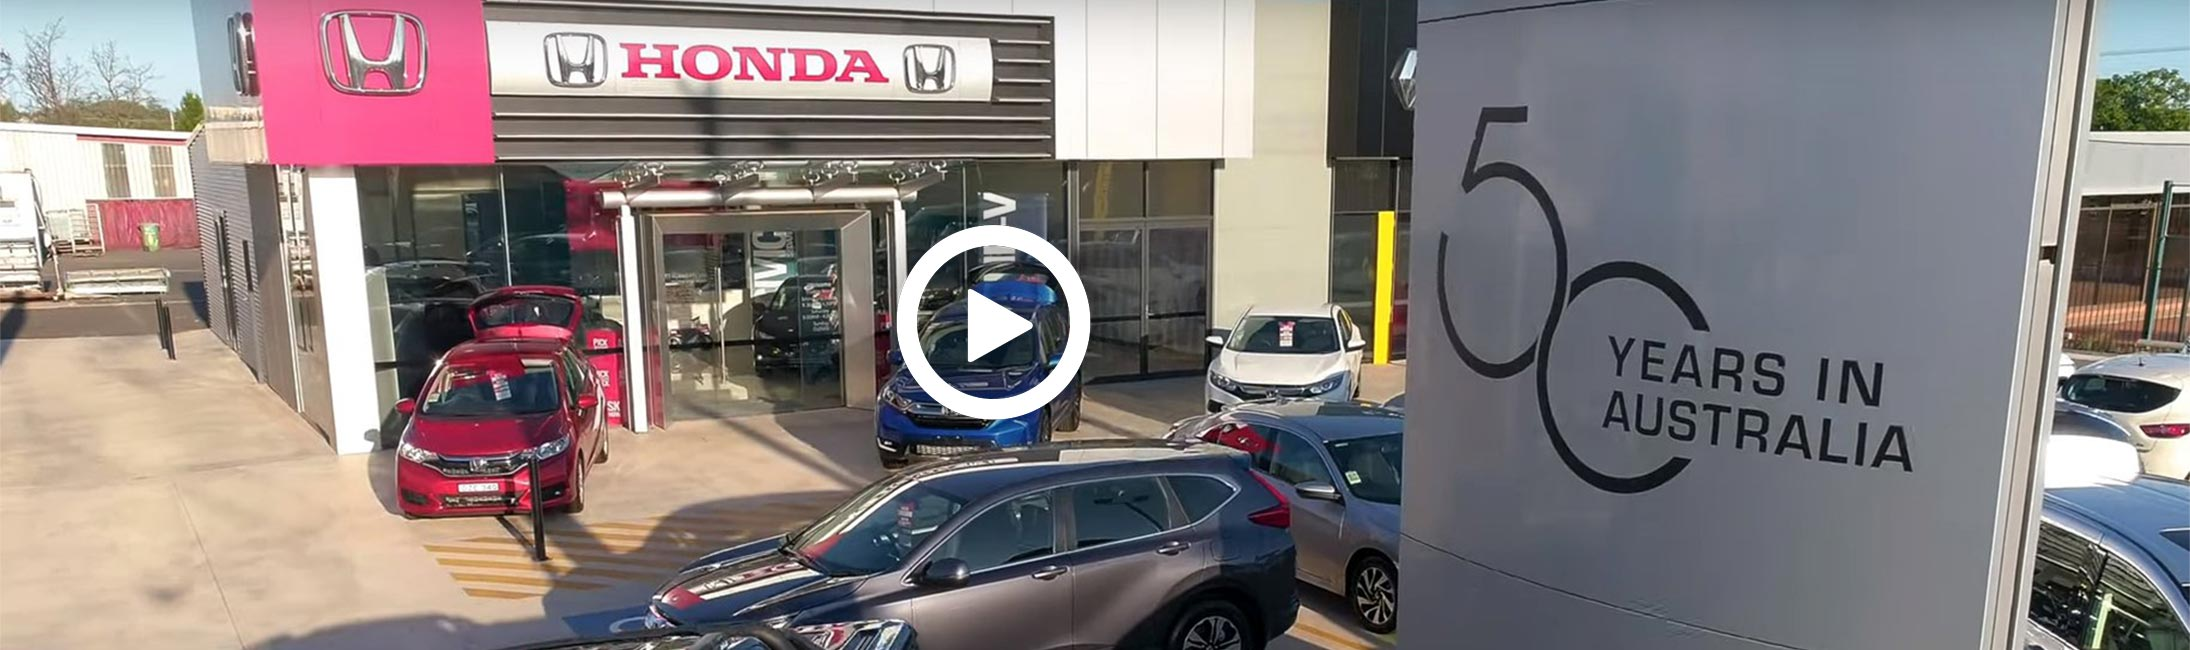 Golden West Honda